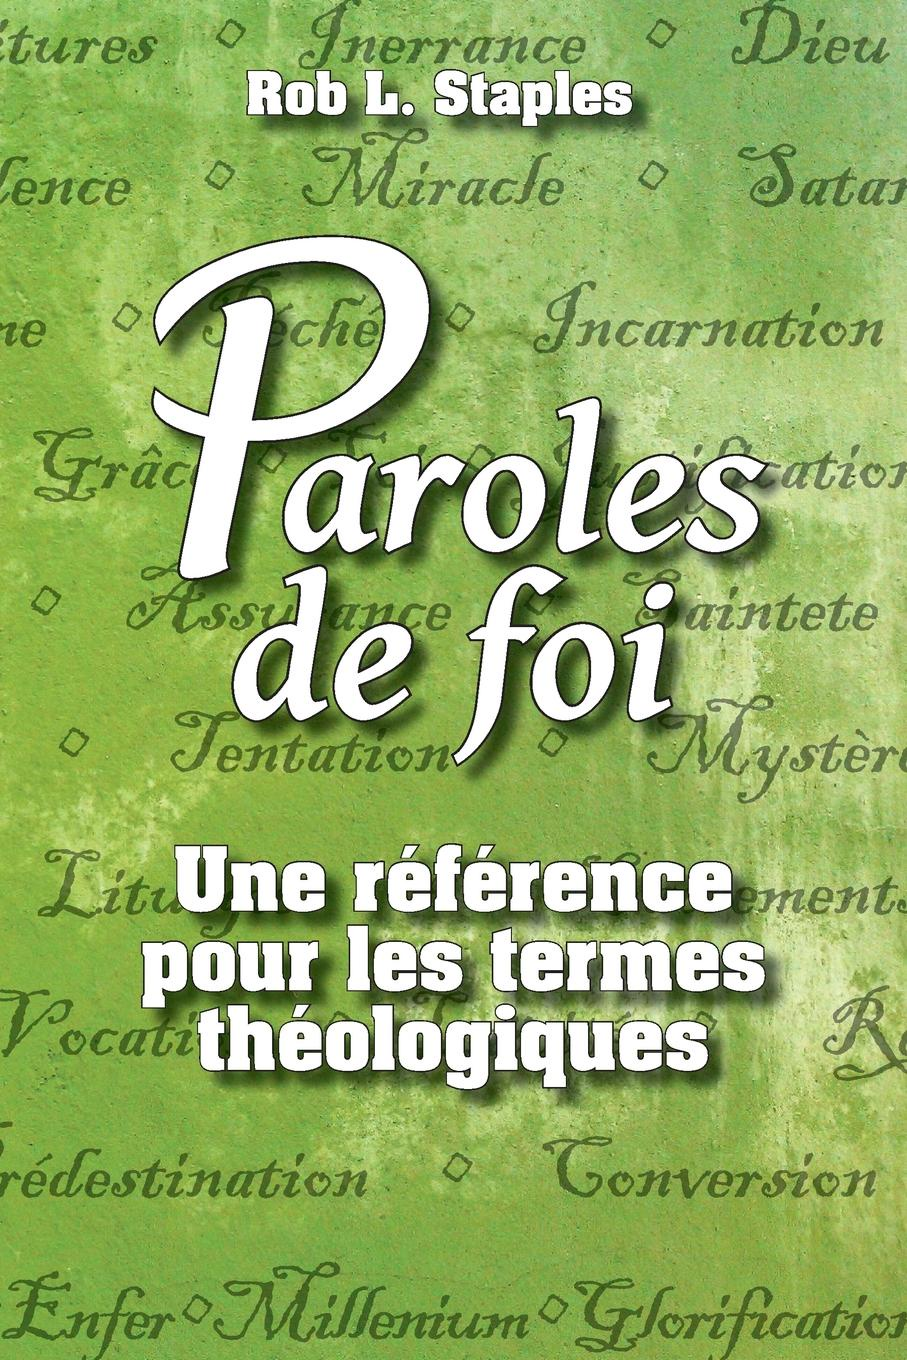 Rob L. Staples Paroles de foi jules august soury histoire des doctrines de psychologie physiologique contemporaines les fonctions du cerveau doctrines de l ecole de strasbourg doctrines de l ecole italienne